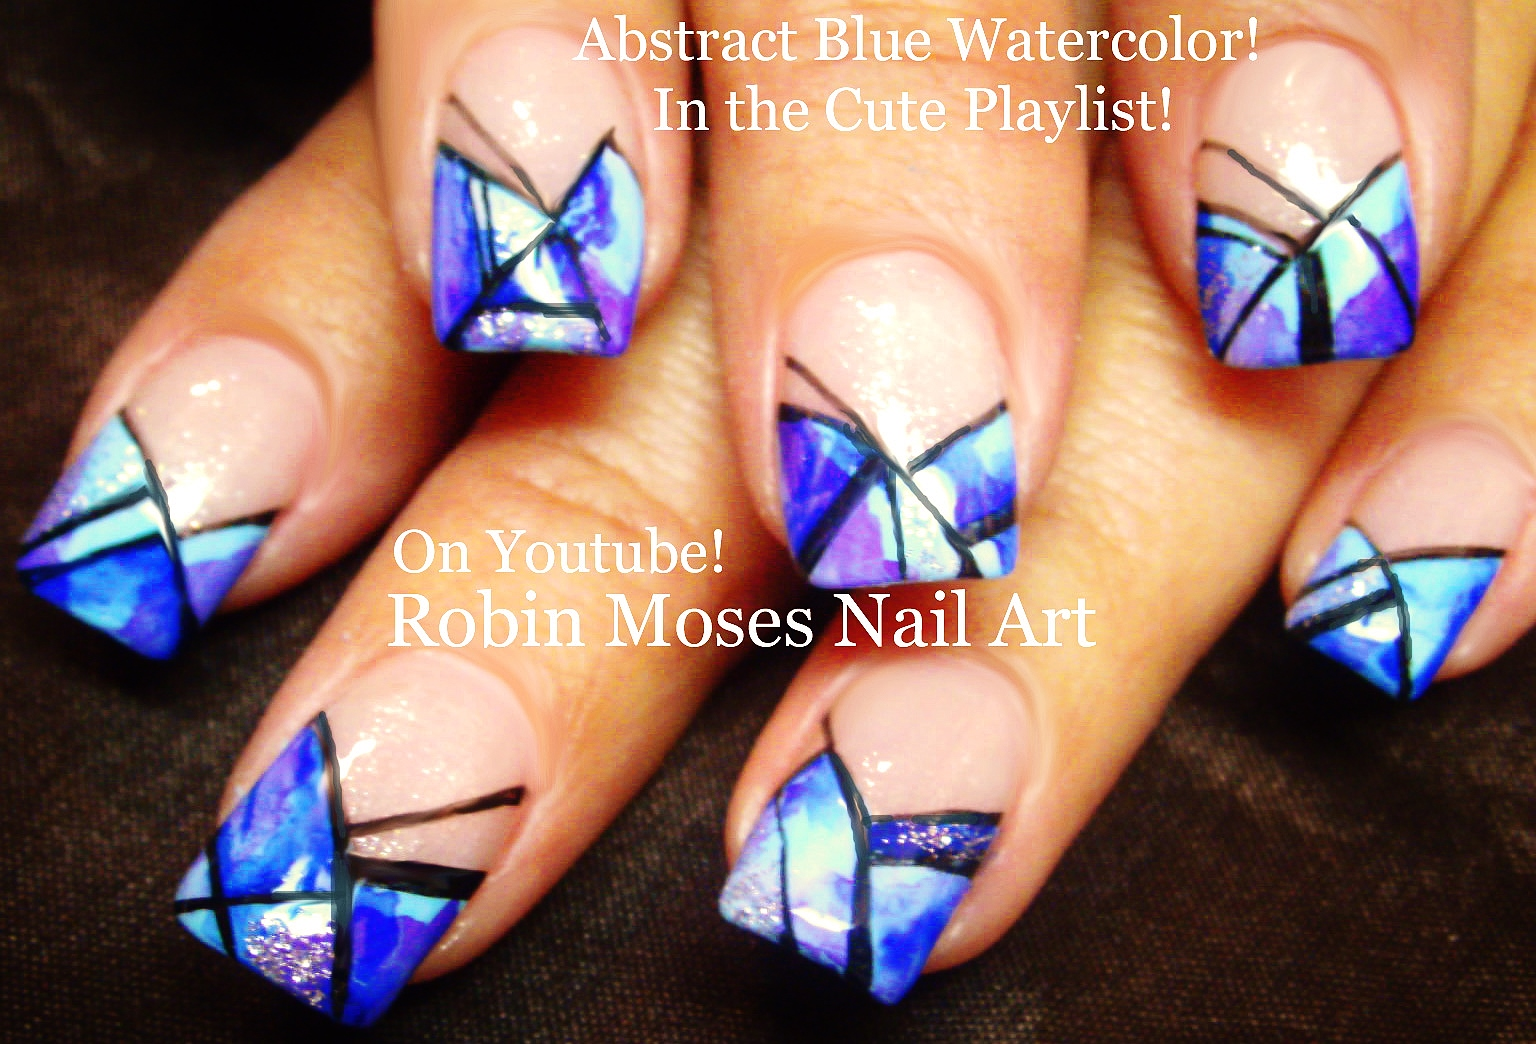 Abstract Watercolor Nails!